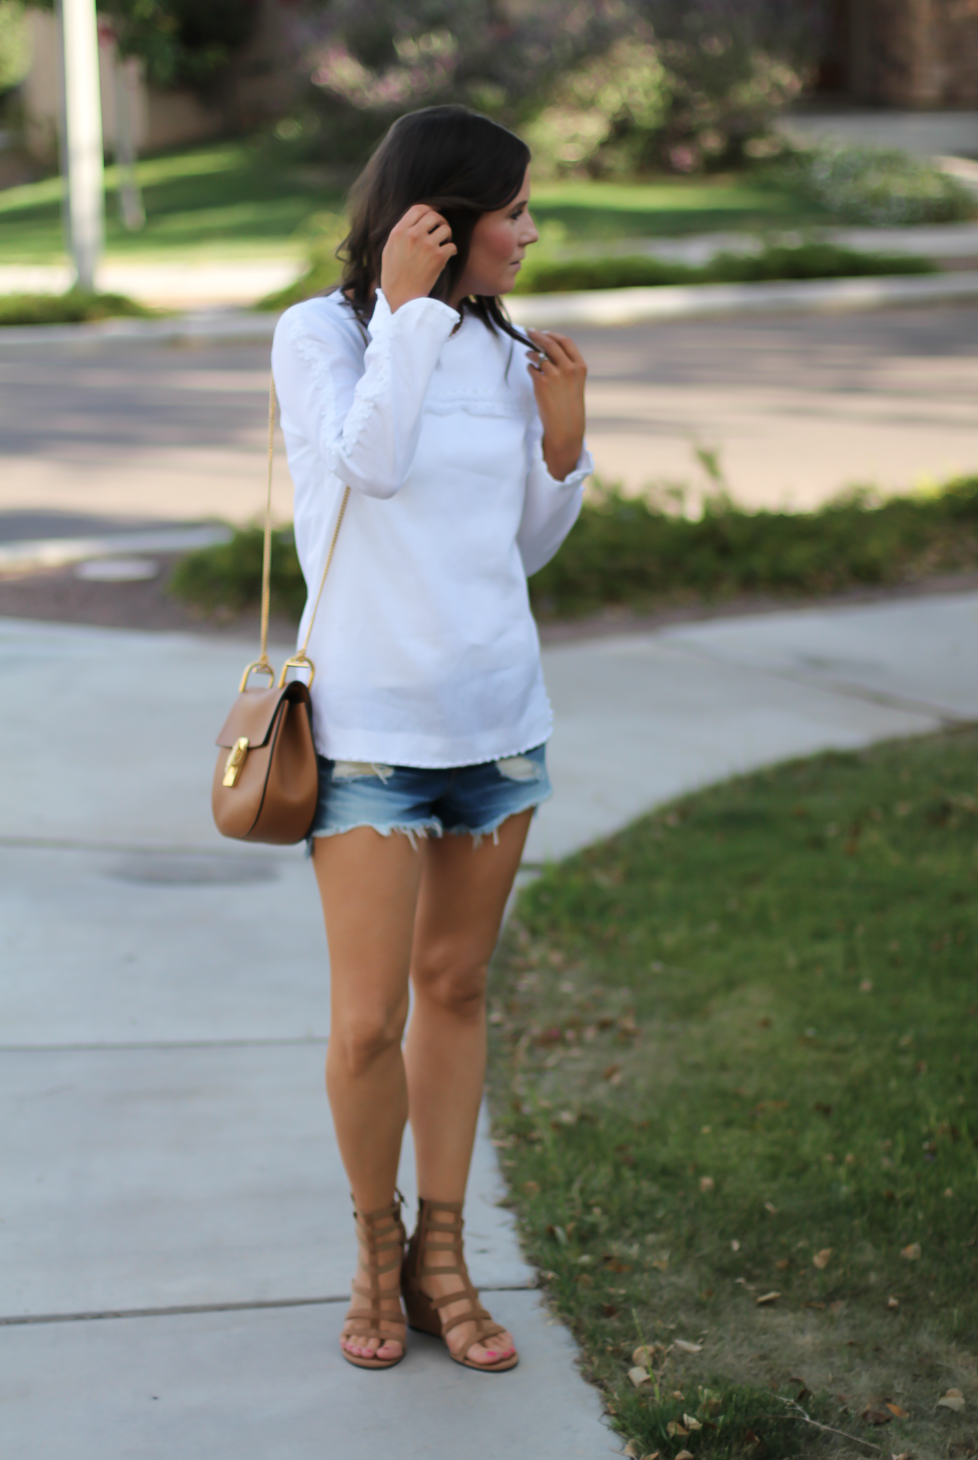 Denim Cutoff Jean Shorts, White Linen Blouse, Gladiator Wedge Sandals, Chain Strap Leather Crossbody Bag, Rag and Bone, J.Crew, Stuart Weitzman, Chloe 12